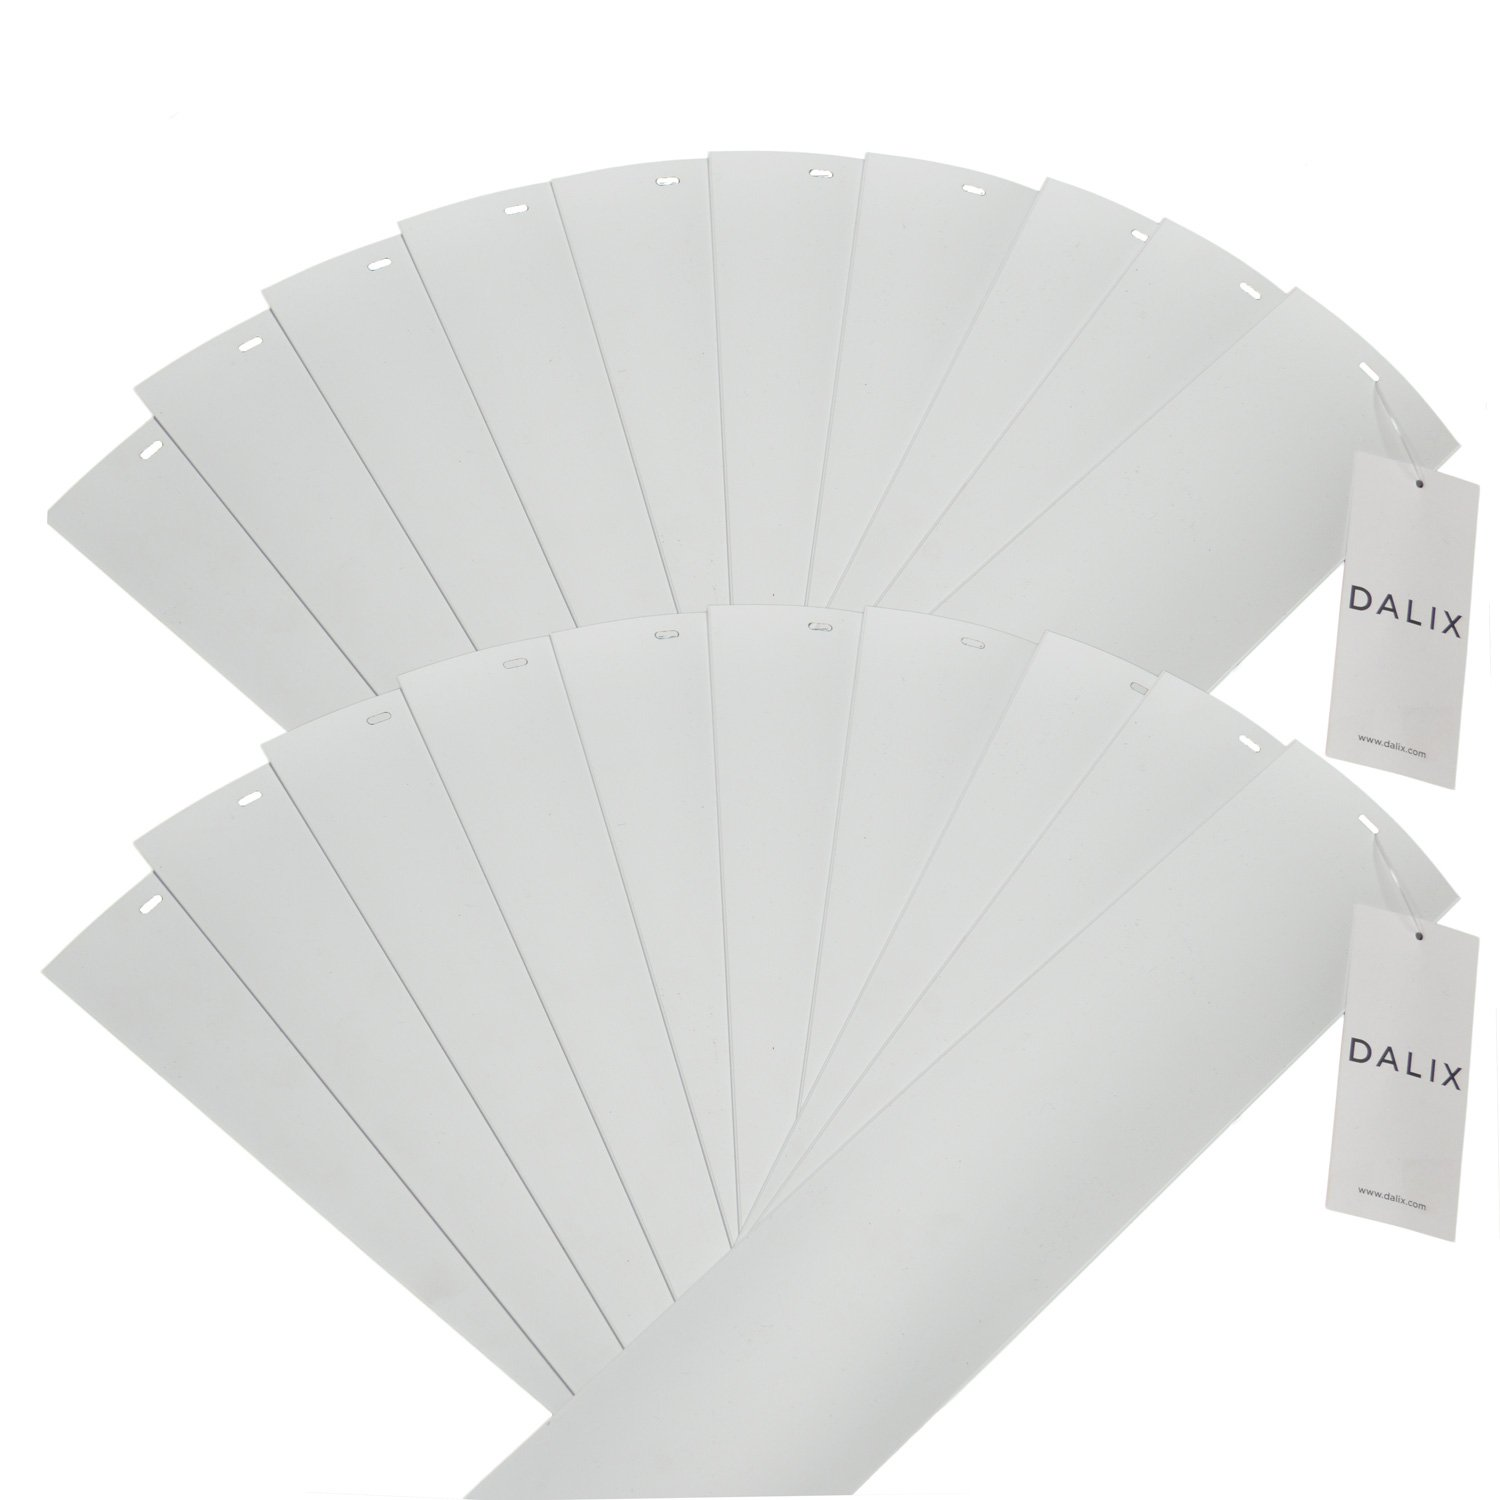 DALIX PVC Veritcal Blind Replacement Slats Curved Smooth White 82.5 x 3.5 (20-Pack) by DALIX